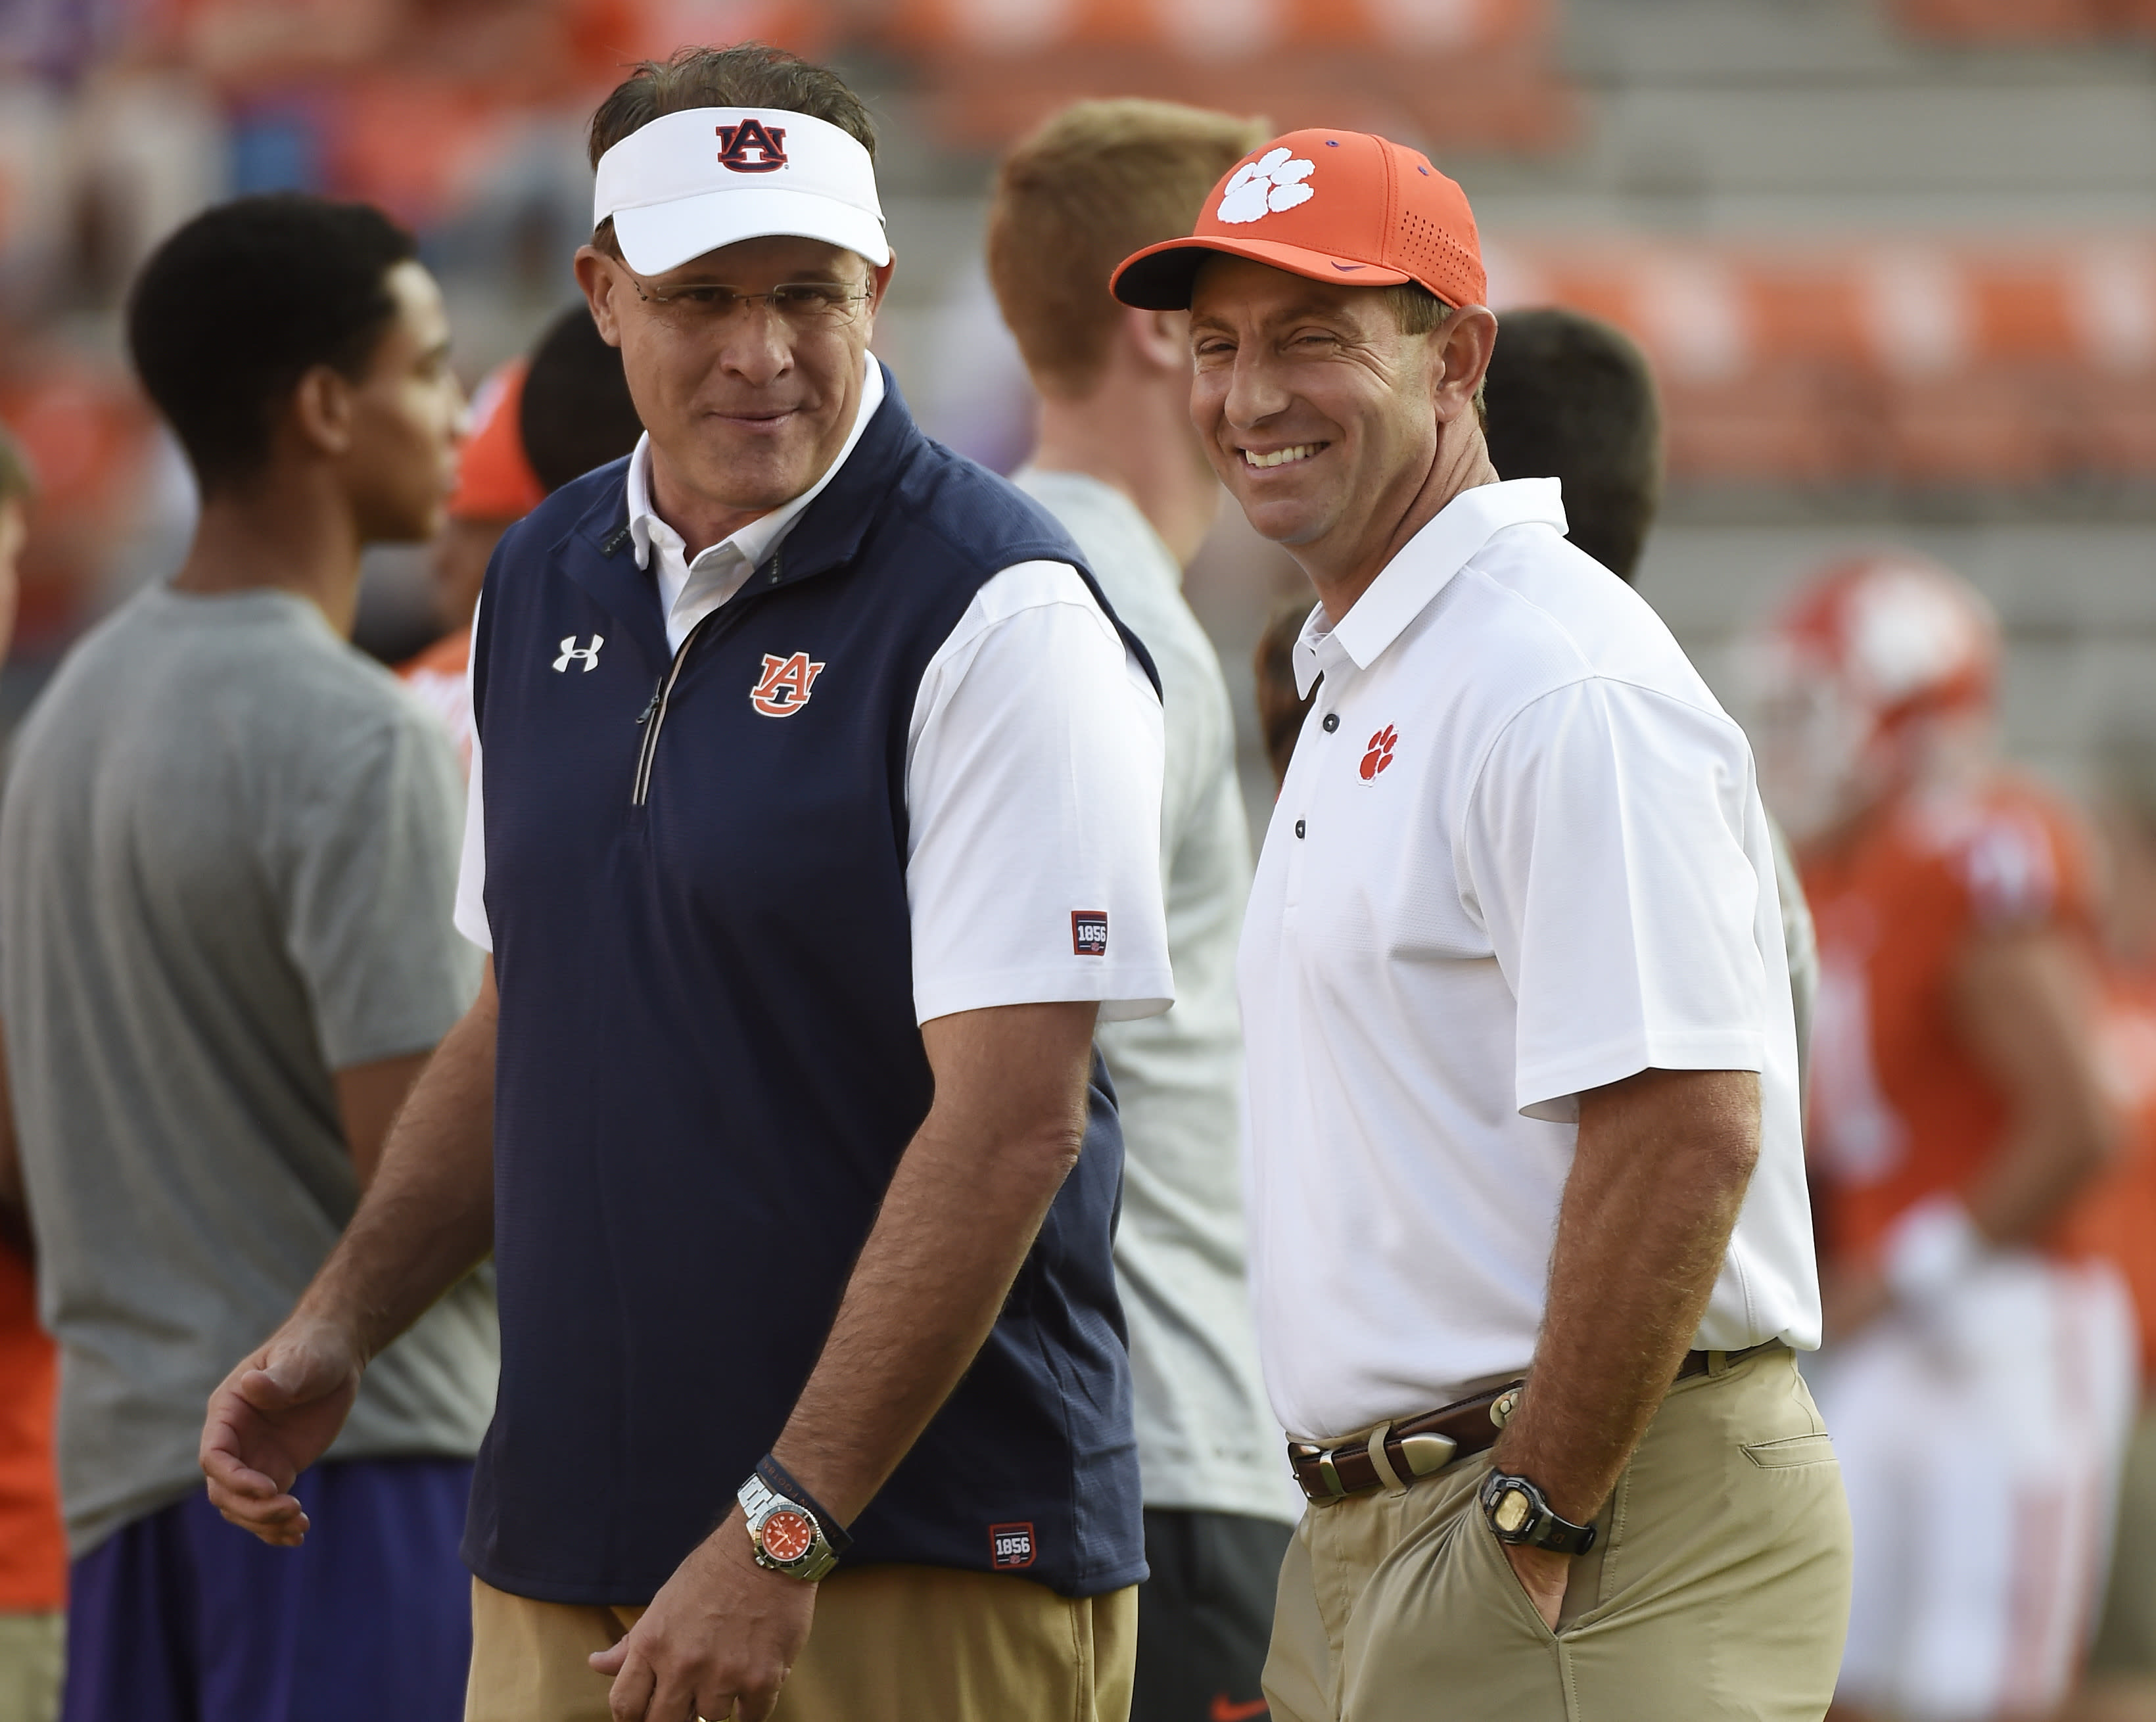 Clemson's Dabo Swinney had awesome pregame moment with ...